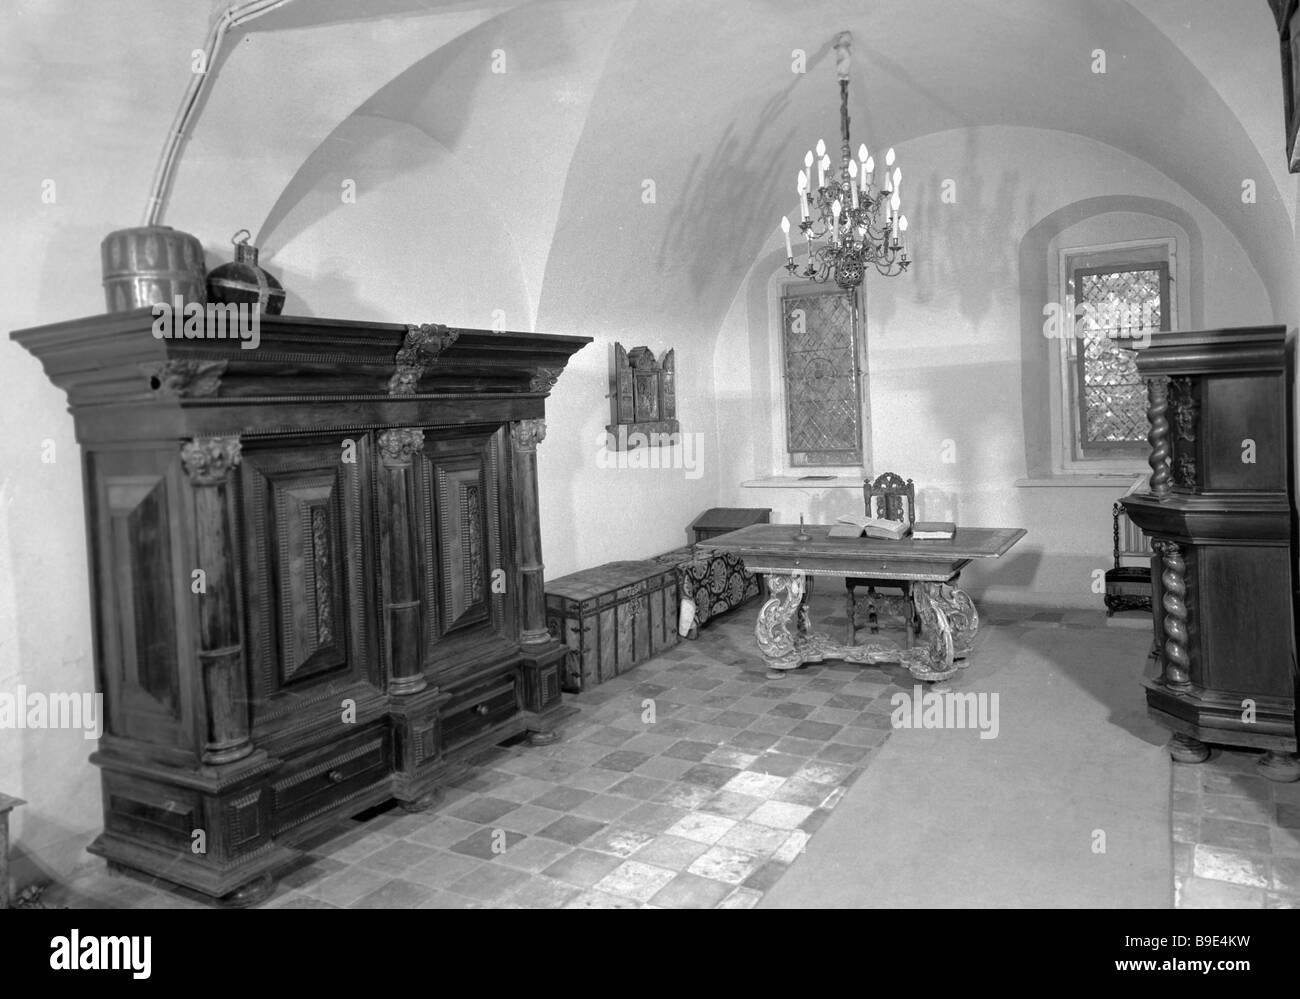 The Patriarchal Chambers of the Moscow Kremlin - Stock Image